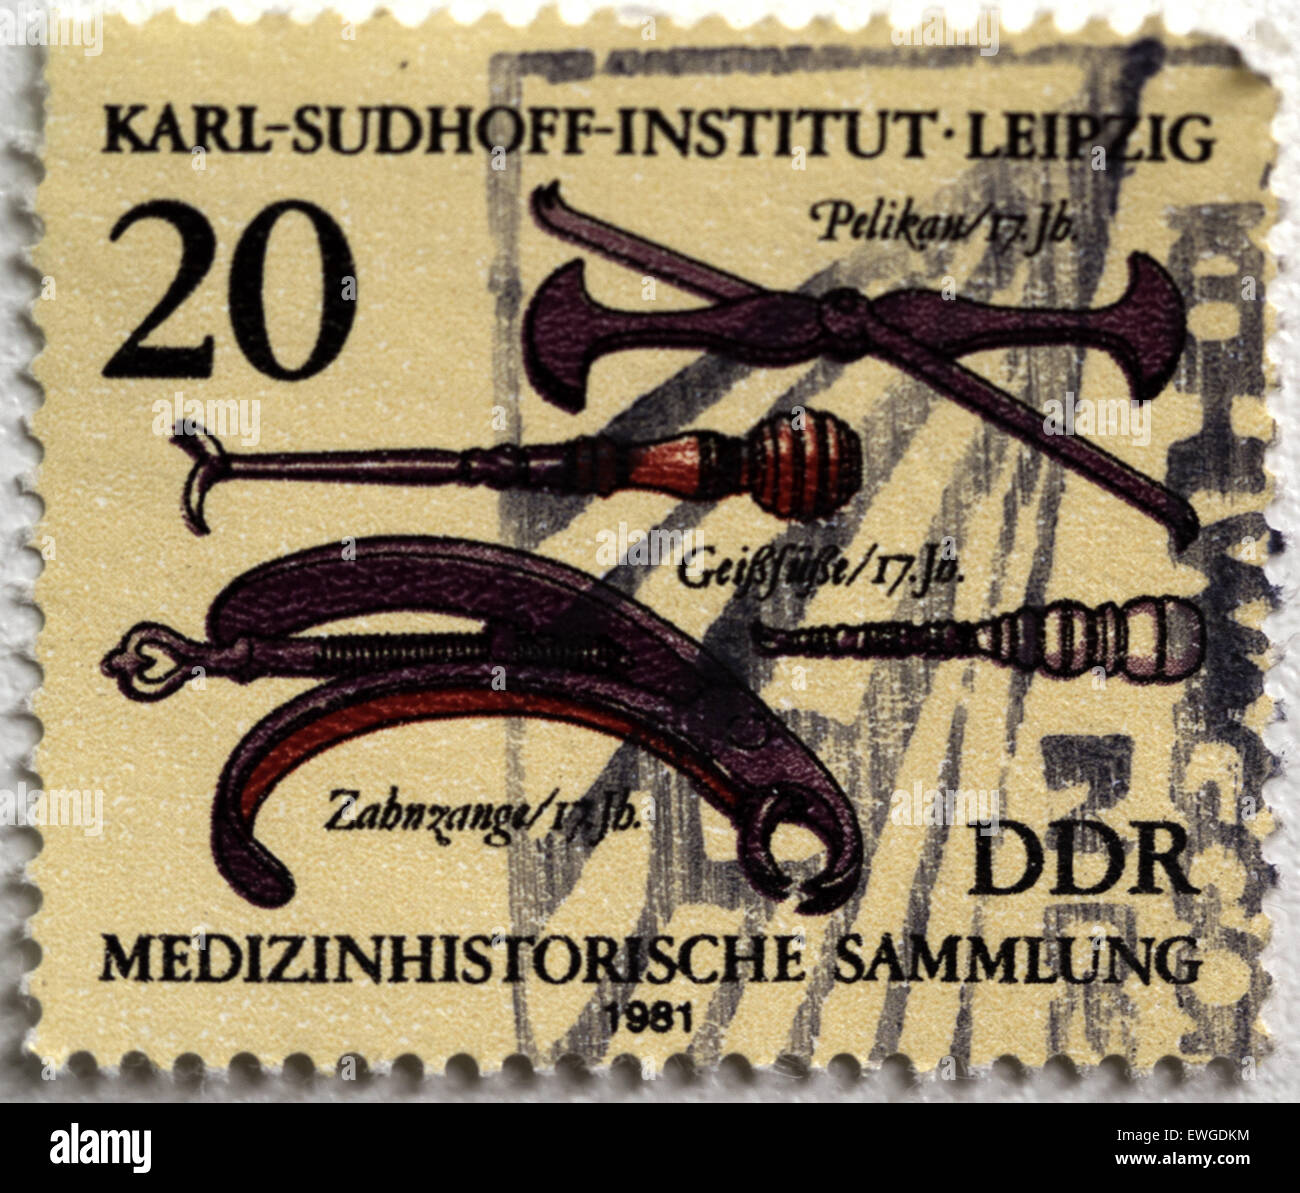 June 20, 2015 - GERMANY- CIRCA 1981: Stamp printed in Germany shows 18th cent, History medical instruments, Leipzig, Karl Sudhoff Institute © Igor Golovniov/ZUMA Wire/Alamy Live News Stock Photo